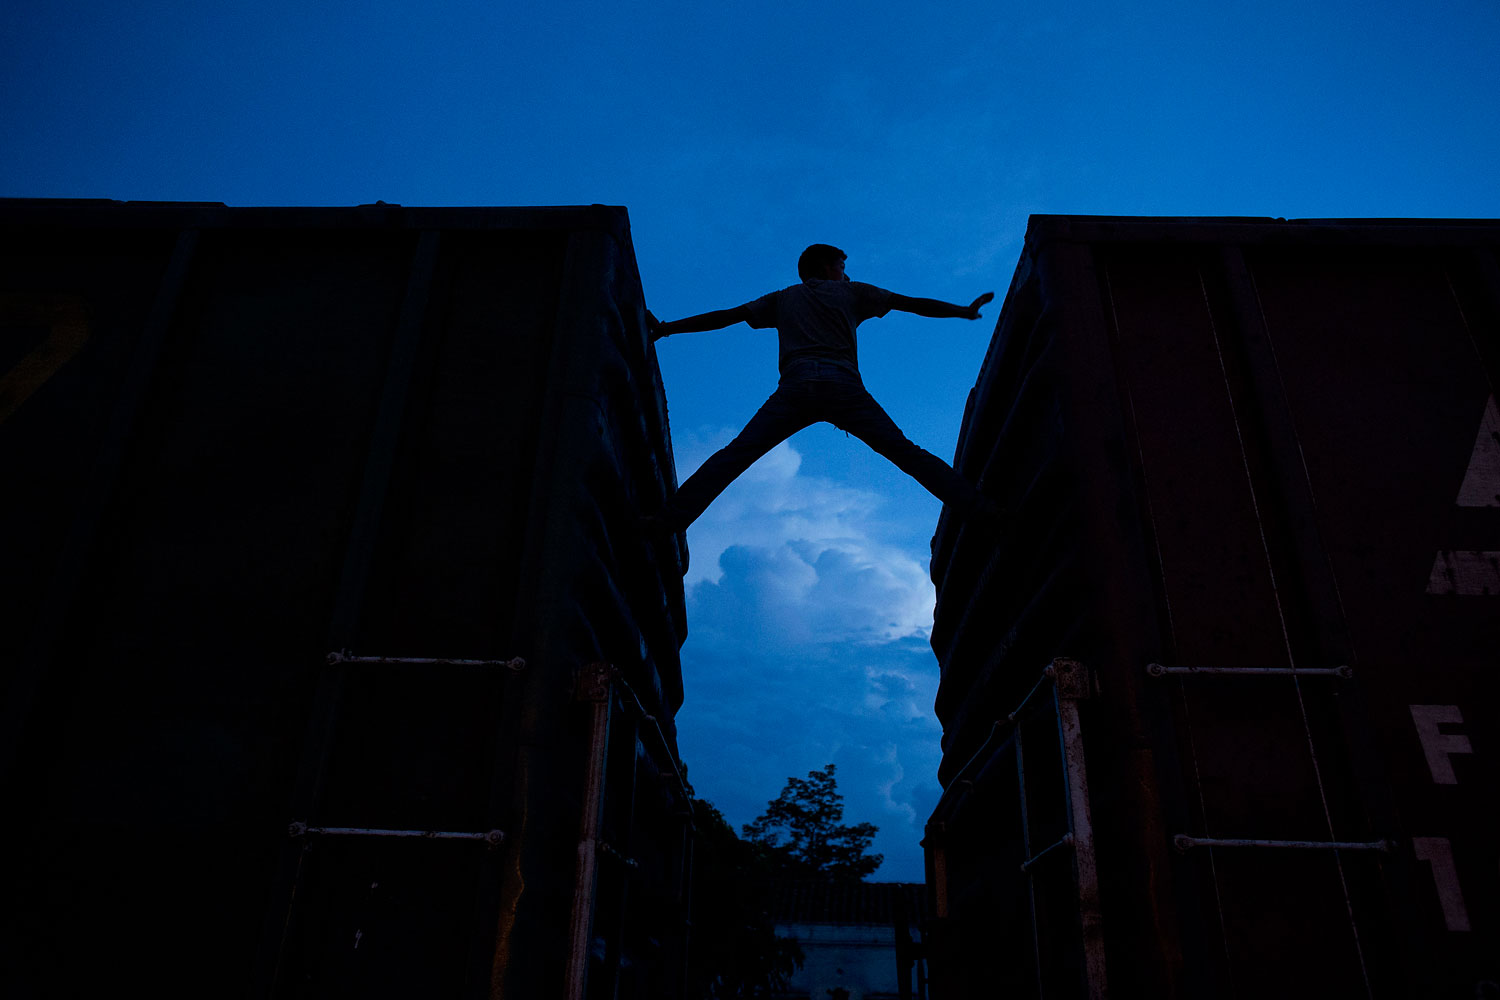 A Central American migrant practices scaling parked boxcars as he awaits the arrival of a northbound freight train in Arriaga, Mexico, on June 19, 2014.